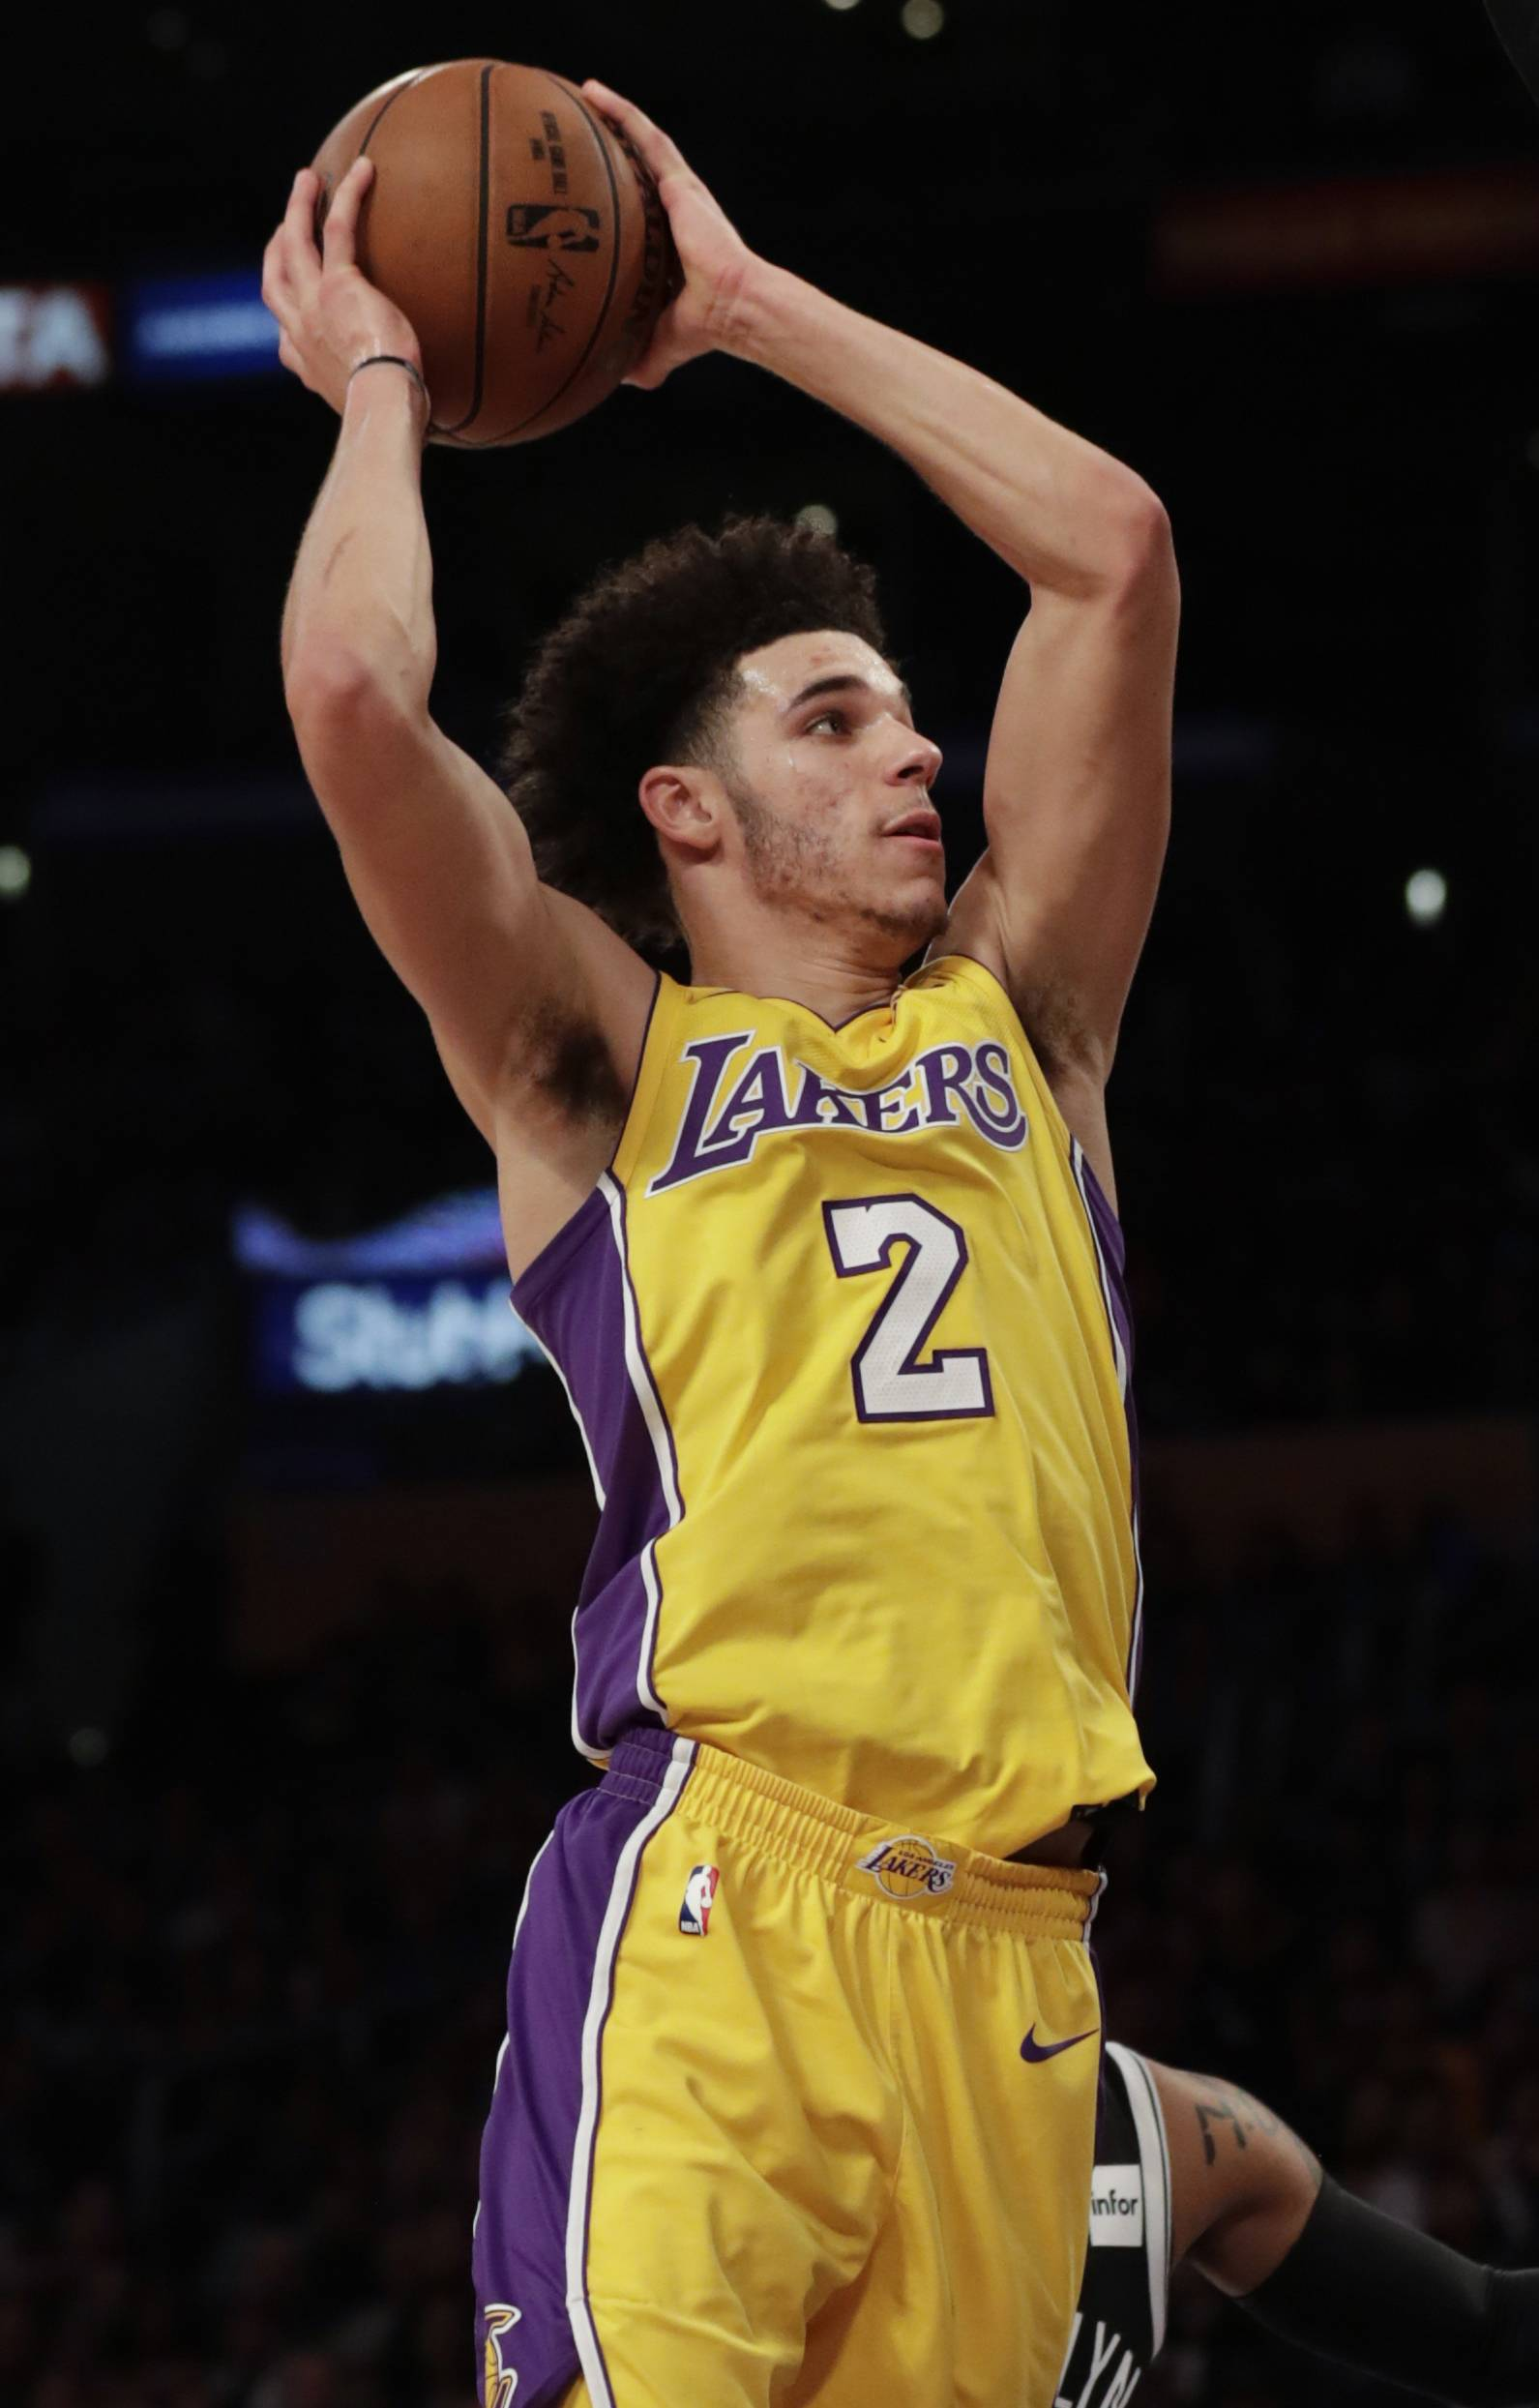 Los Angeles Lakers guard Lonzo Ball goes to the basket during the first half of an NBA basketball game against the Brooklyn Nets, Friday, Nov. 3, 2017, in Los Angeles.